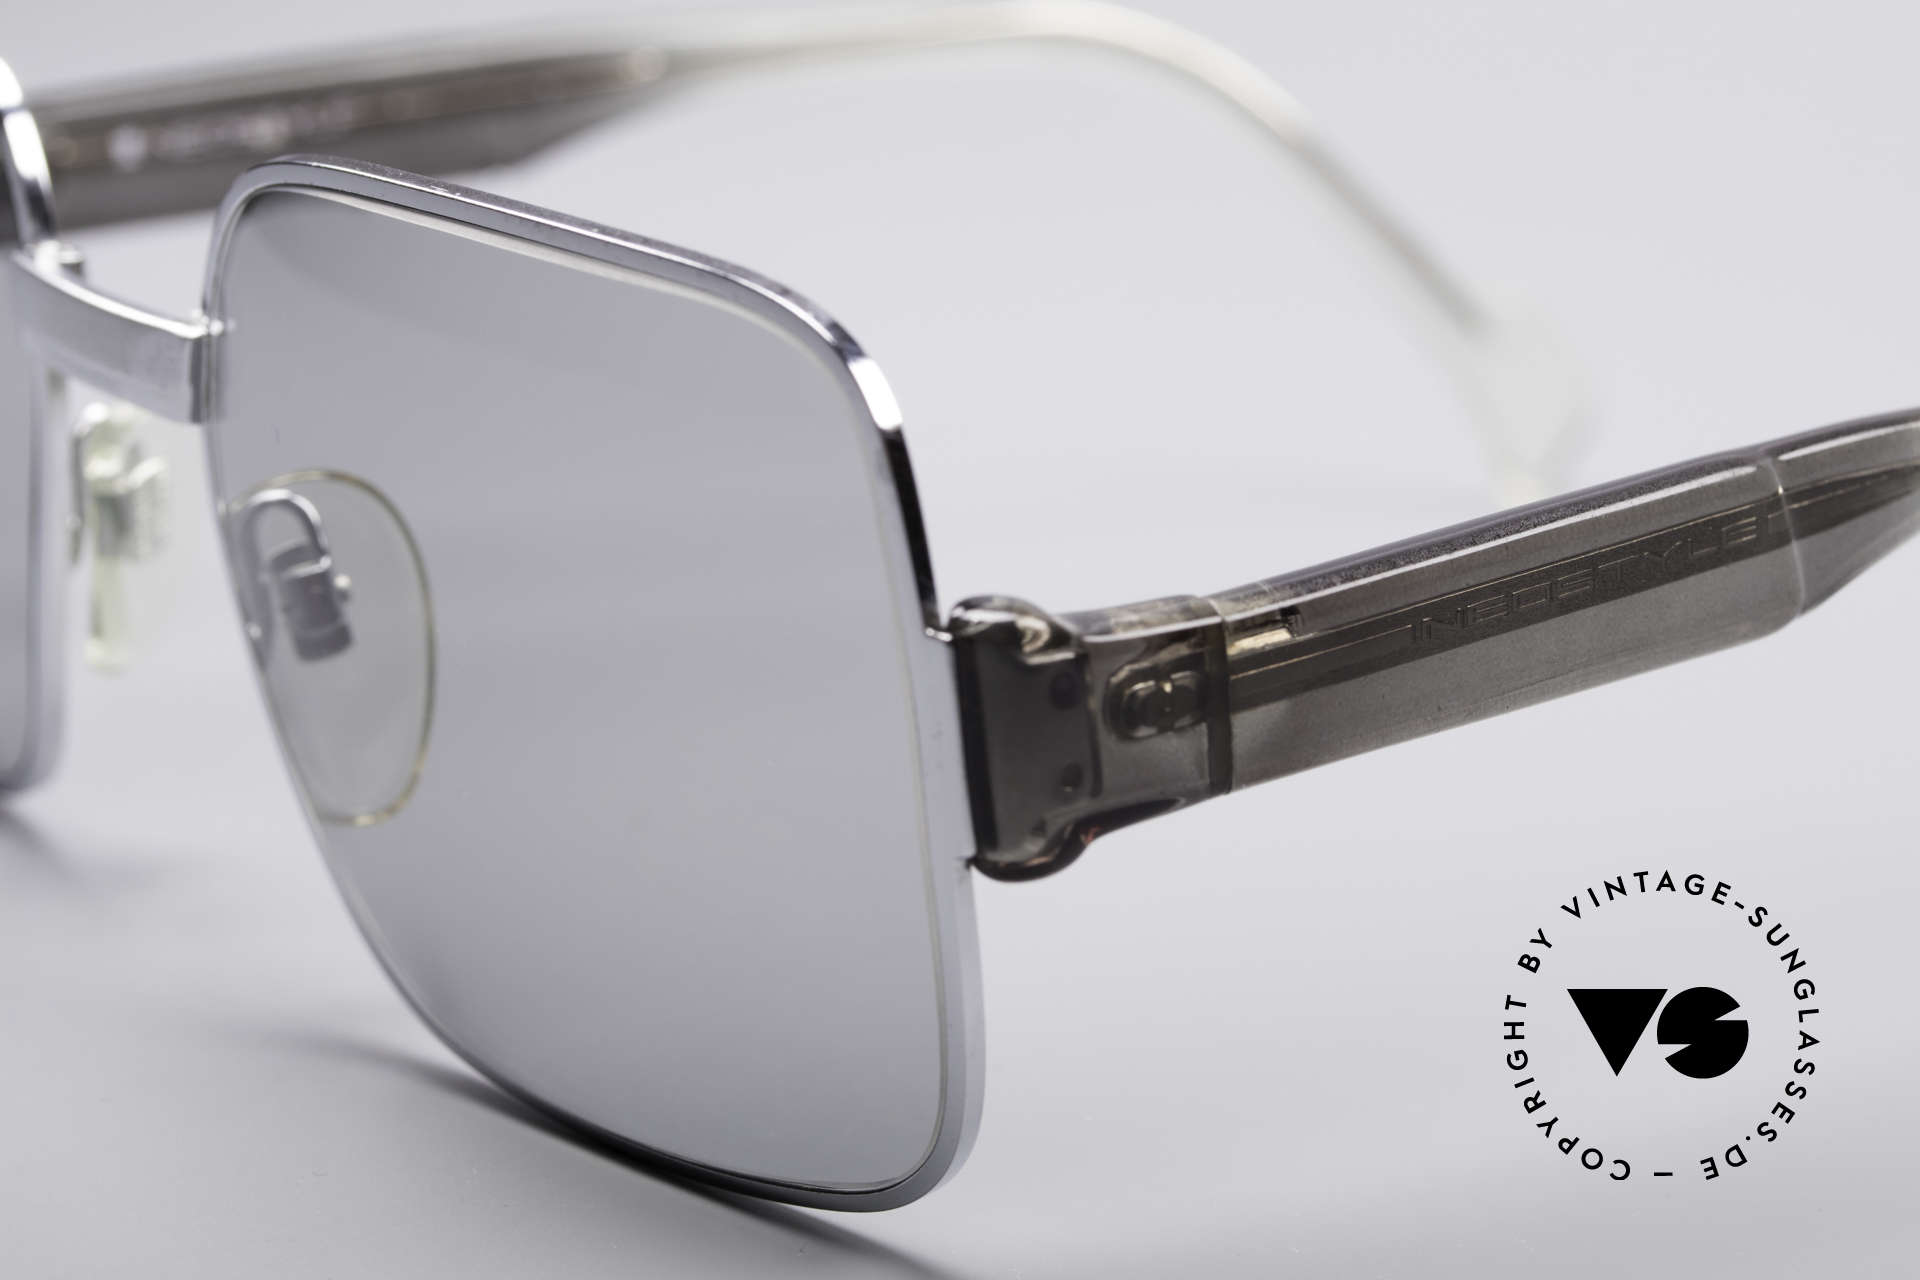 Neostyle Office 40 Old School Sunglasses, light gray tinted sun lenses (100% UV protection), Made for Men